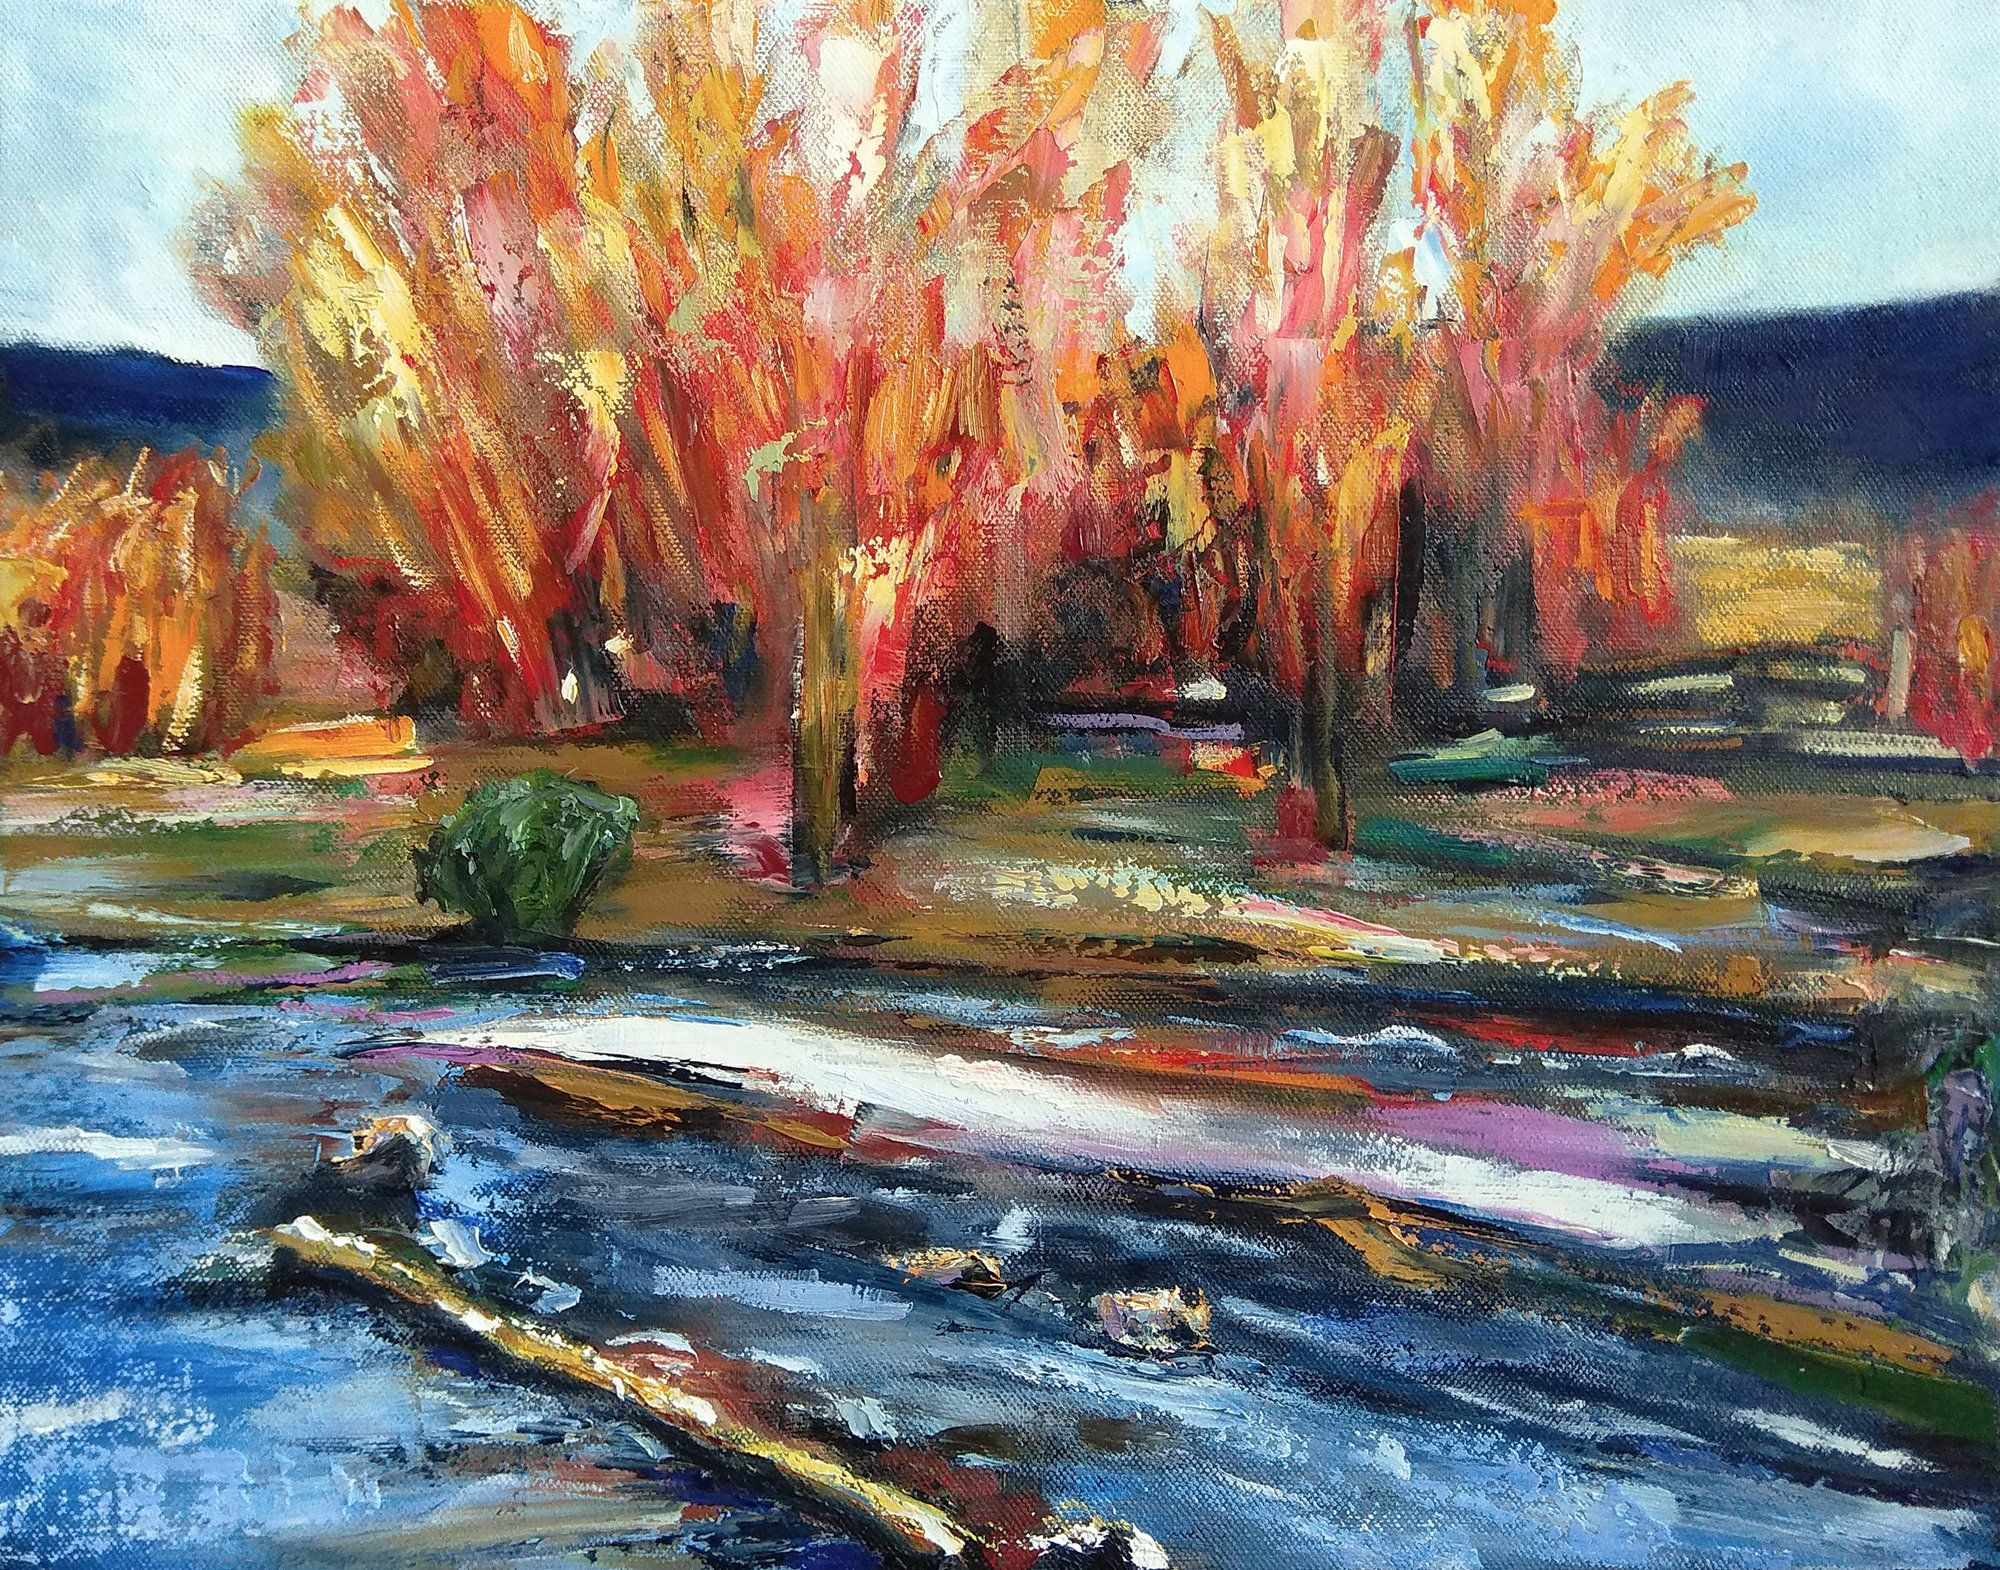 Abstract fall landscape painting on canvas Red trees and water stream River artwork Trees picture wall decor Modern autumn scenery painting #autumnscenery